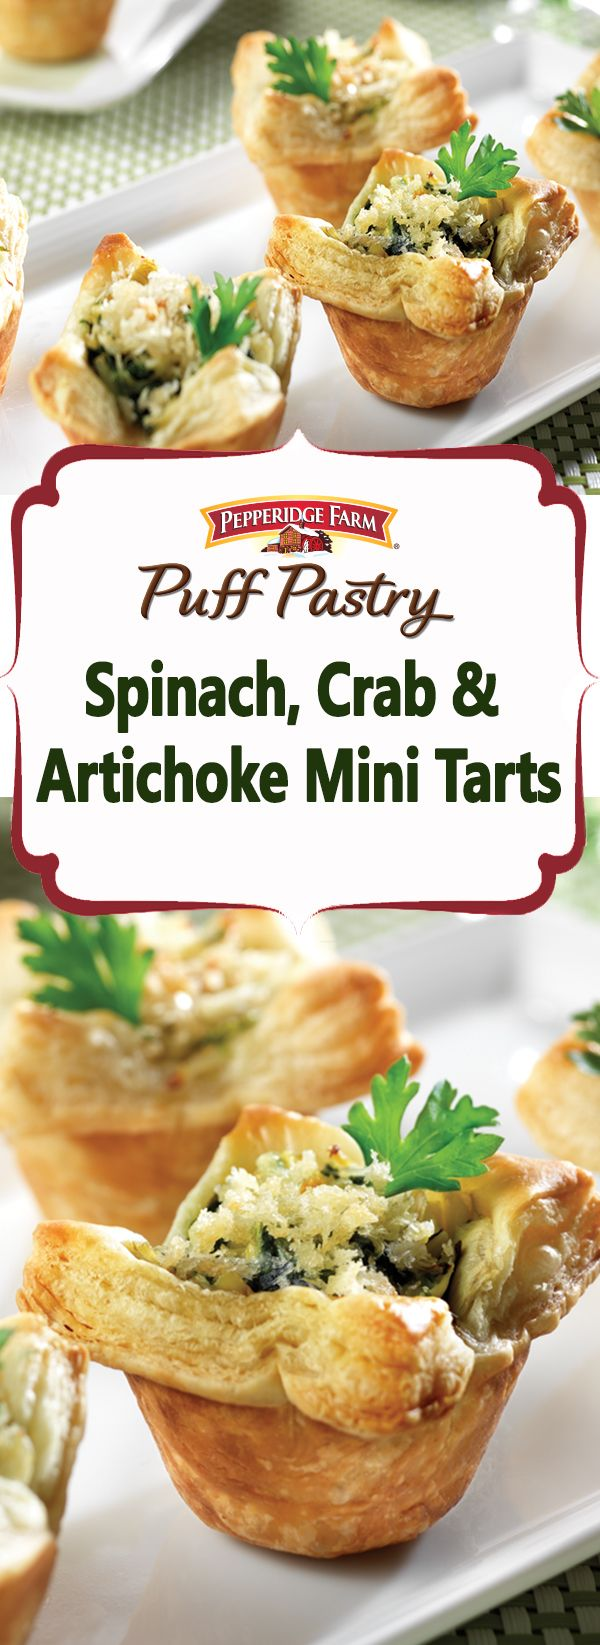 Pepperidge Farm Puff Pastry Spinach, Crab & Artichoke Mini Tarts Recipe. Tired of serving the same old appetizers?  Try these mini Puff Pastry tarts with a savory crab and veggie filling that will earn rave reviews from your guests.